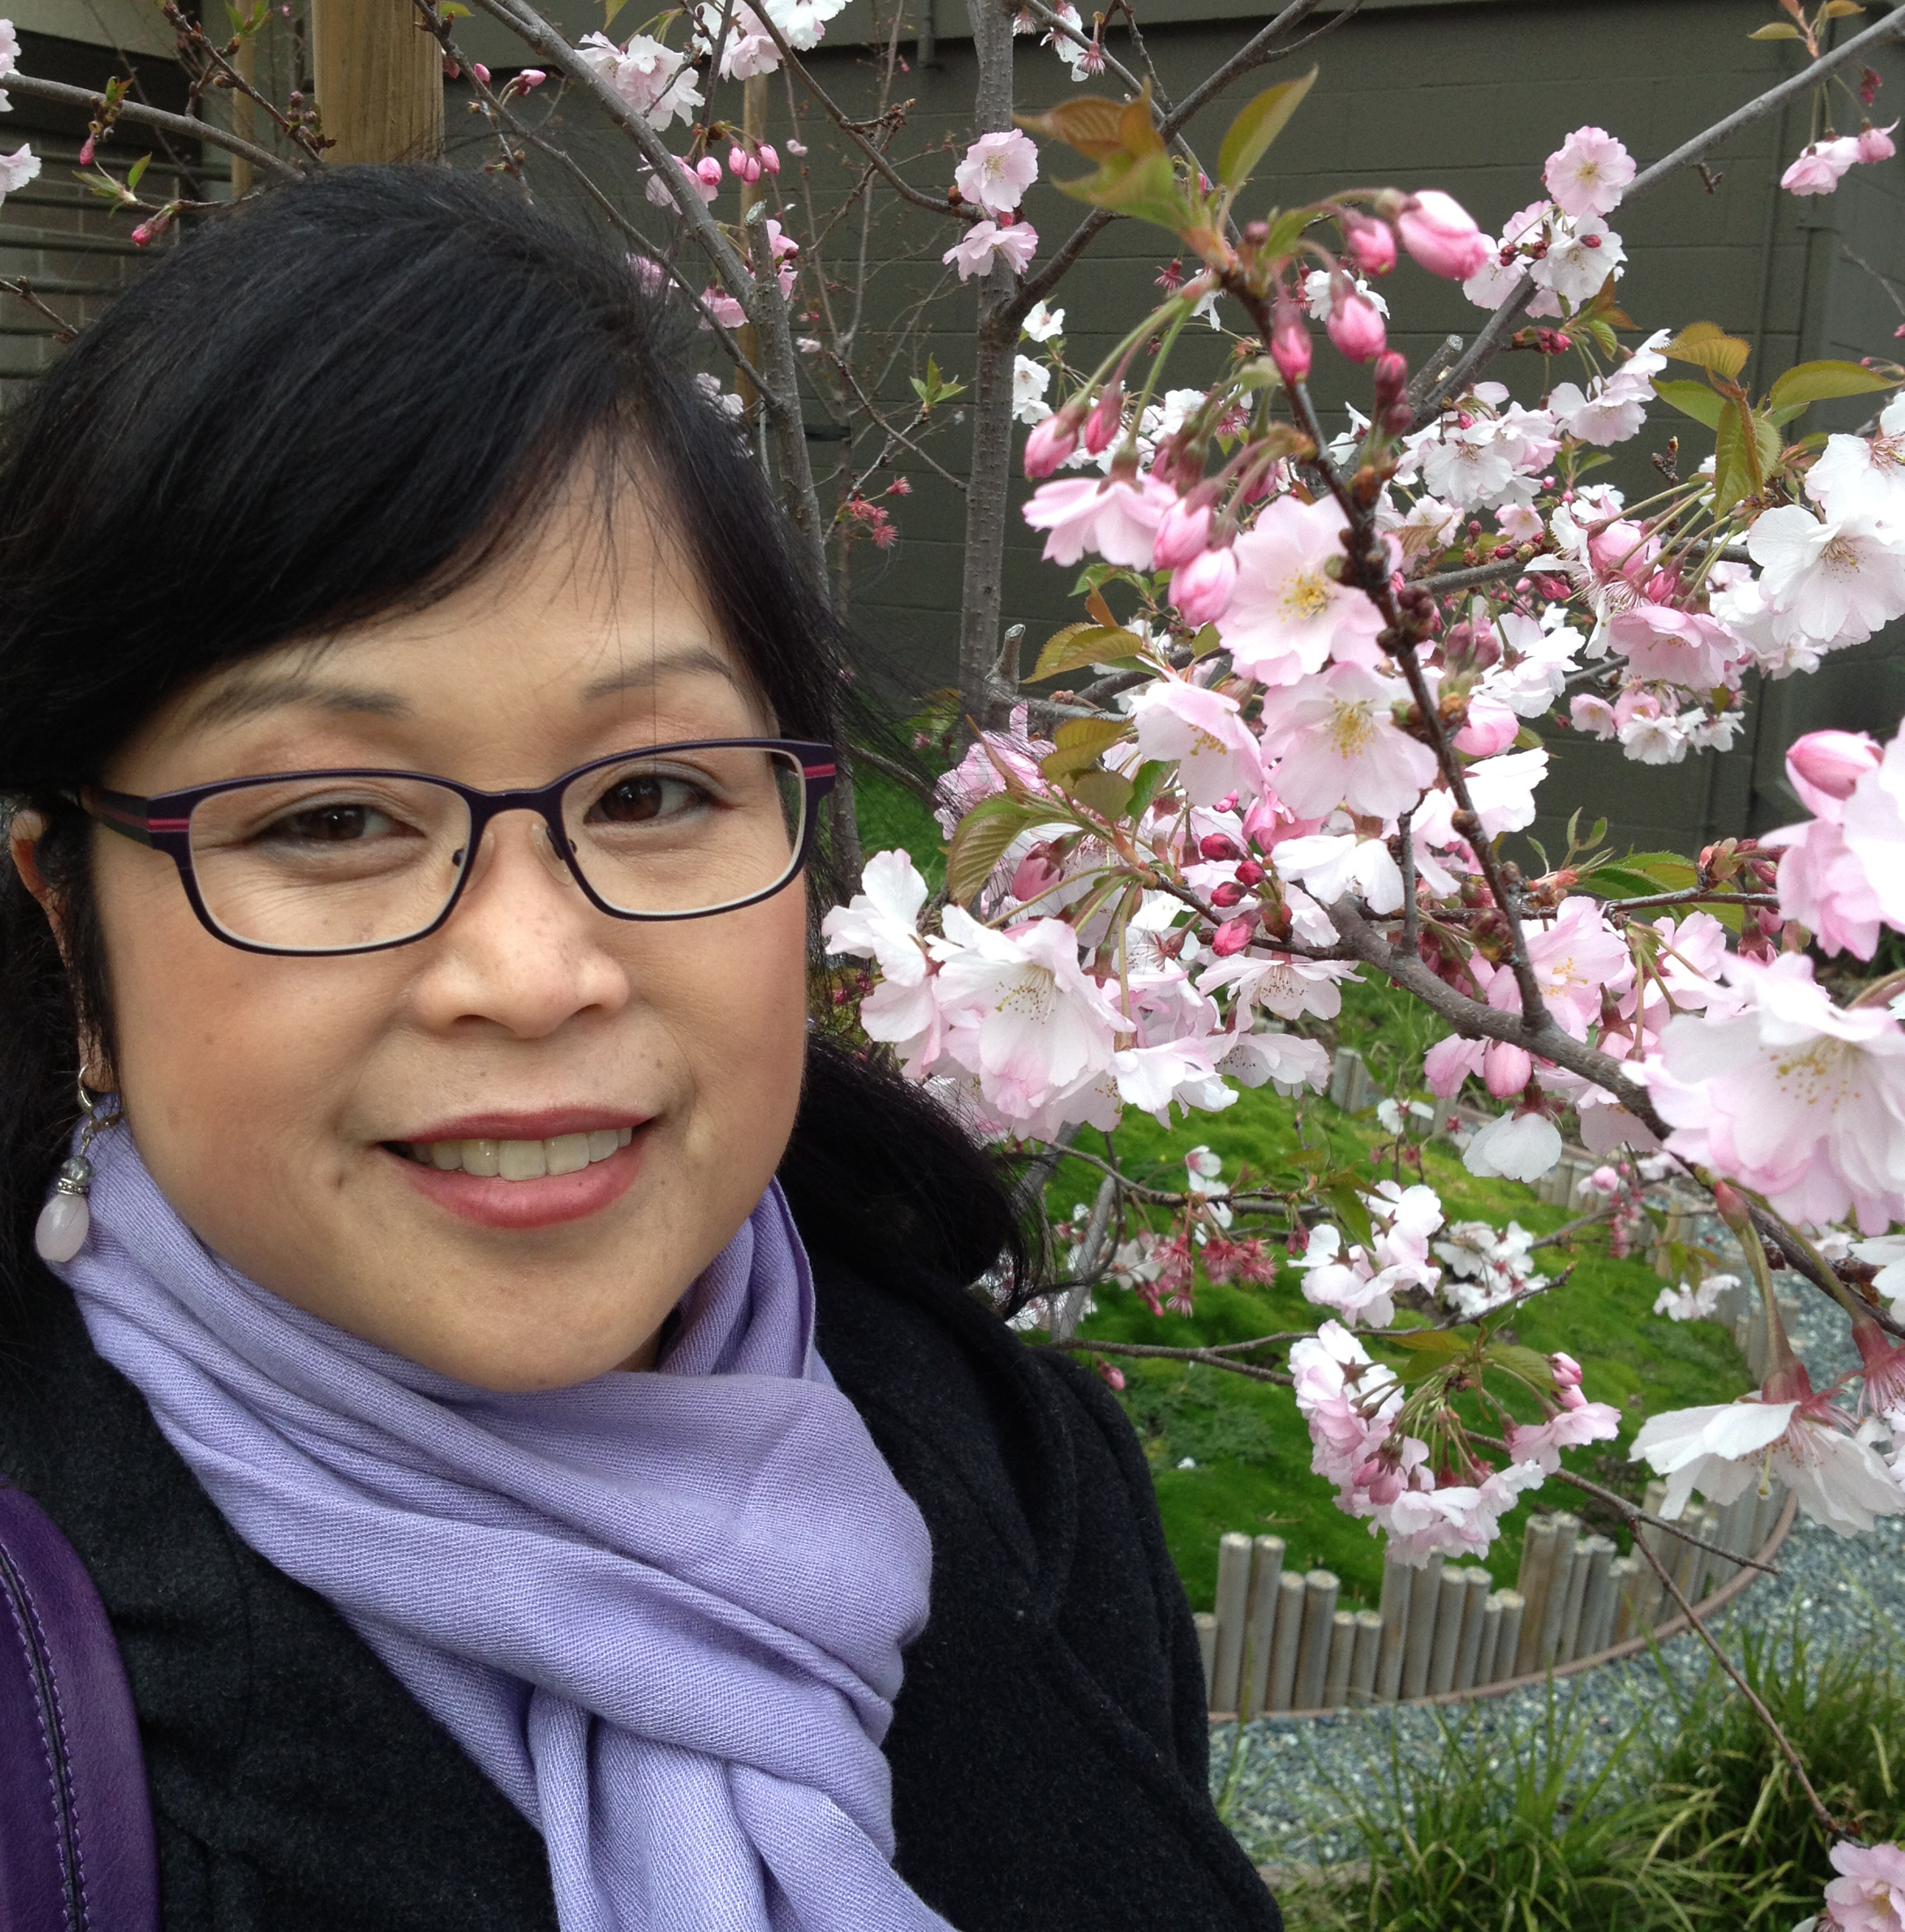 Alice Kawahatsu | Epicurean Concierge | Japantown   Alice Kawahatsu is a 3rd generation Japanese American who was born and raised in San Francisco. For the past 25 years she has been active in the Japantown community. You can often find her volunteering at the Japanese Cultural and Community Center of Northern California ( JCCCNC ) and the  Konko Church of San Francisco . She enjoys passing down the culinary lessons she has learned from J-town elders to younger generations, visitors to San Francisco, and the greater Bay Area.